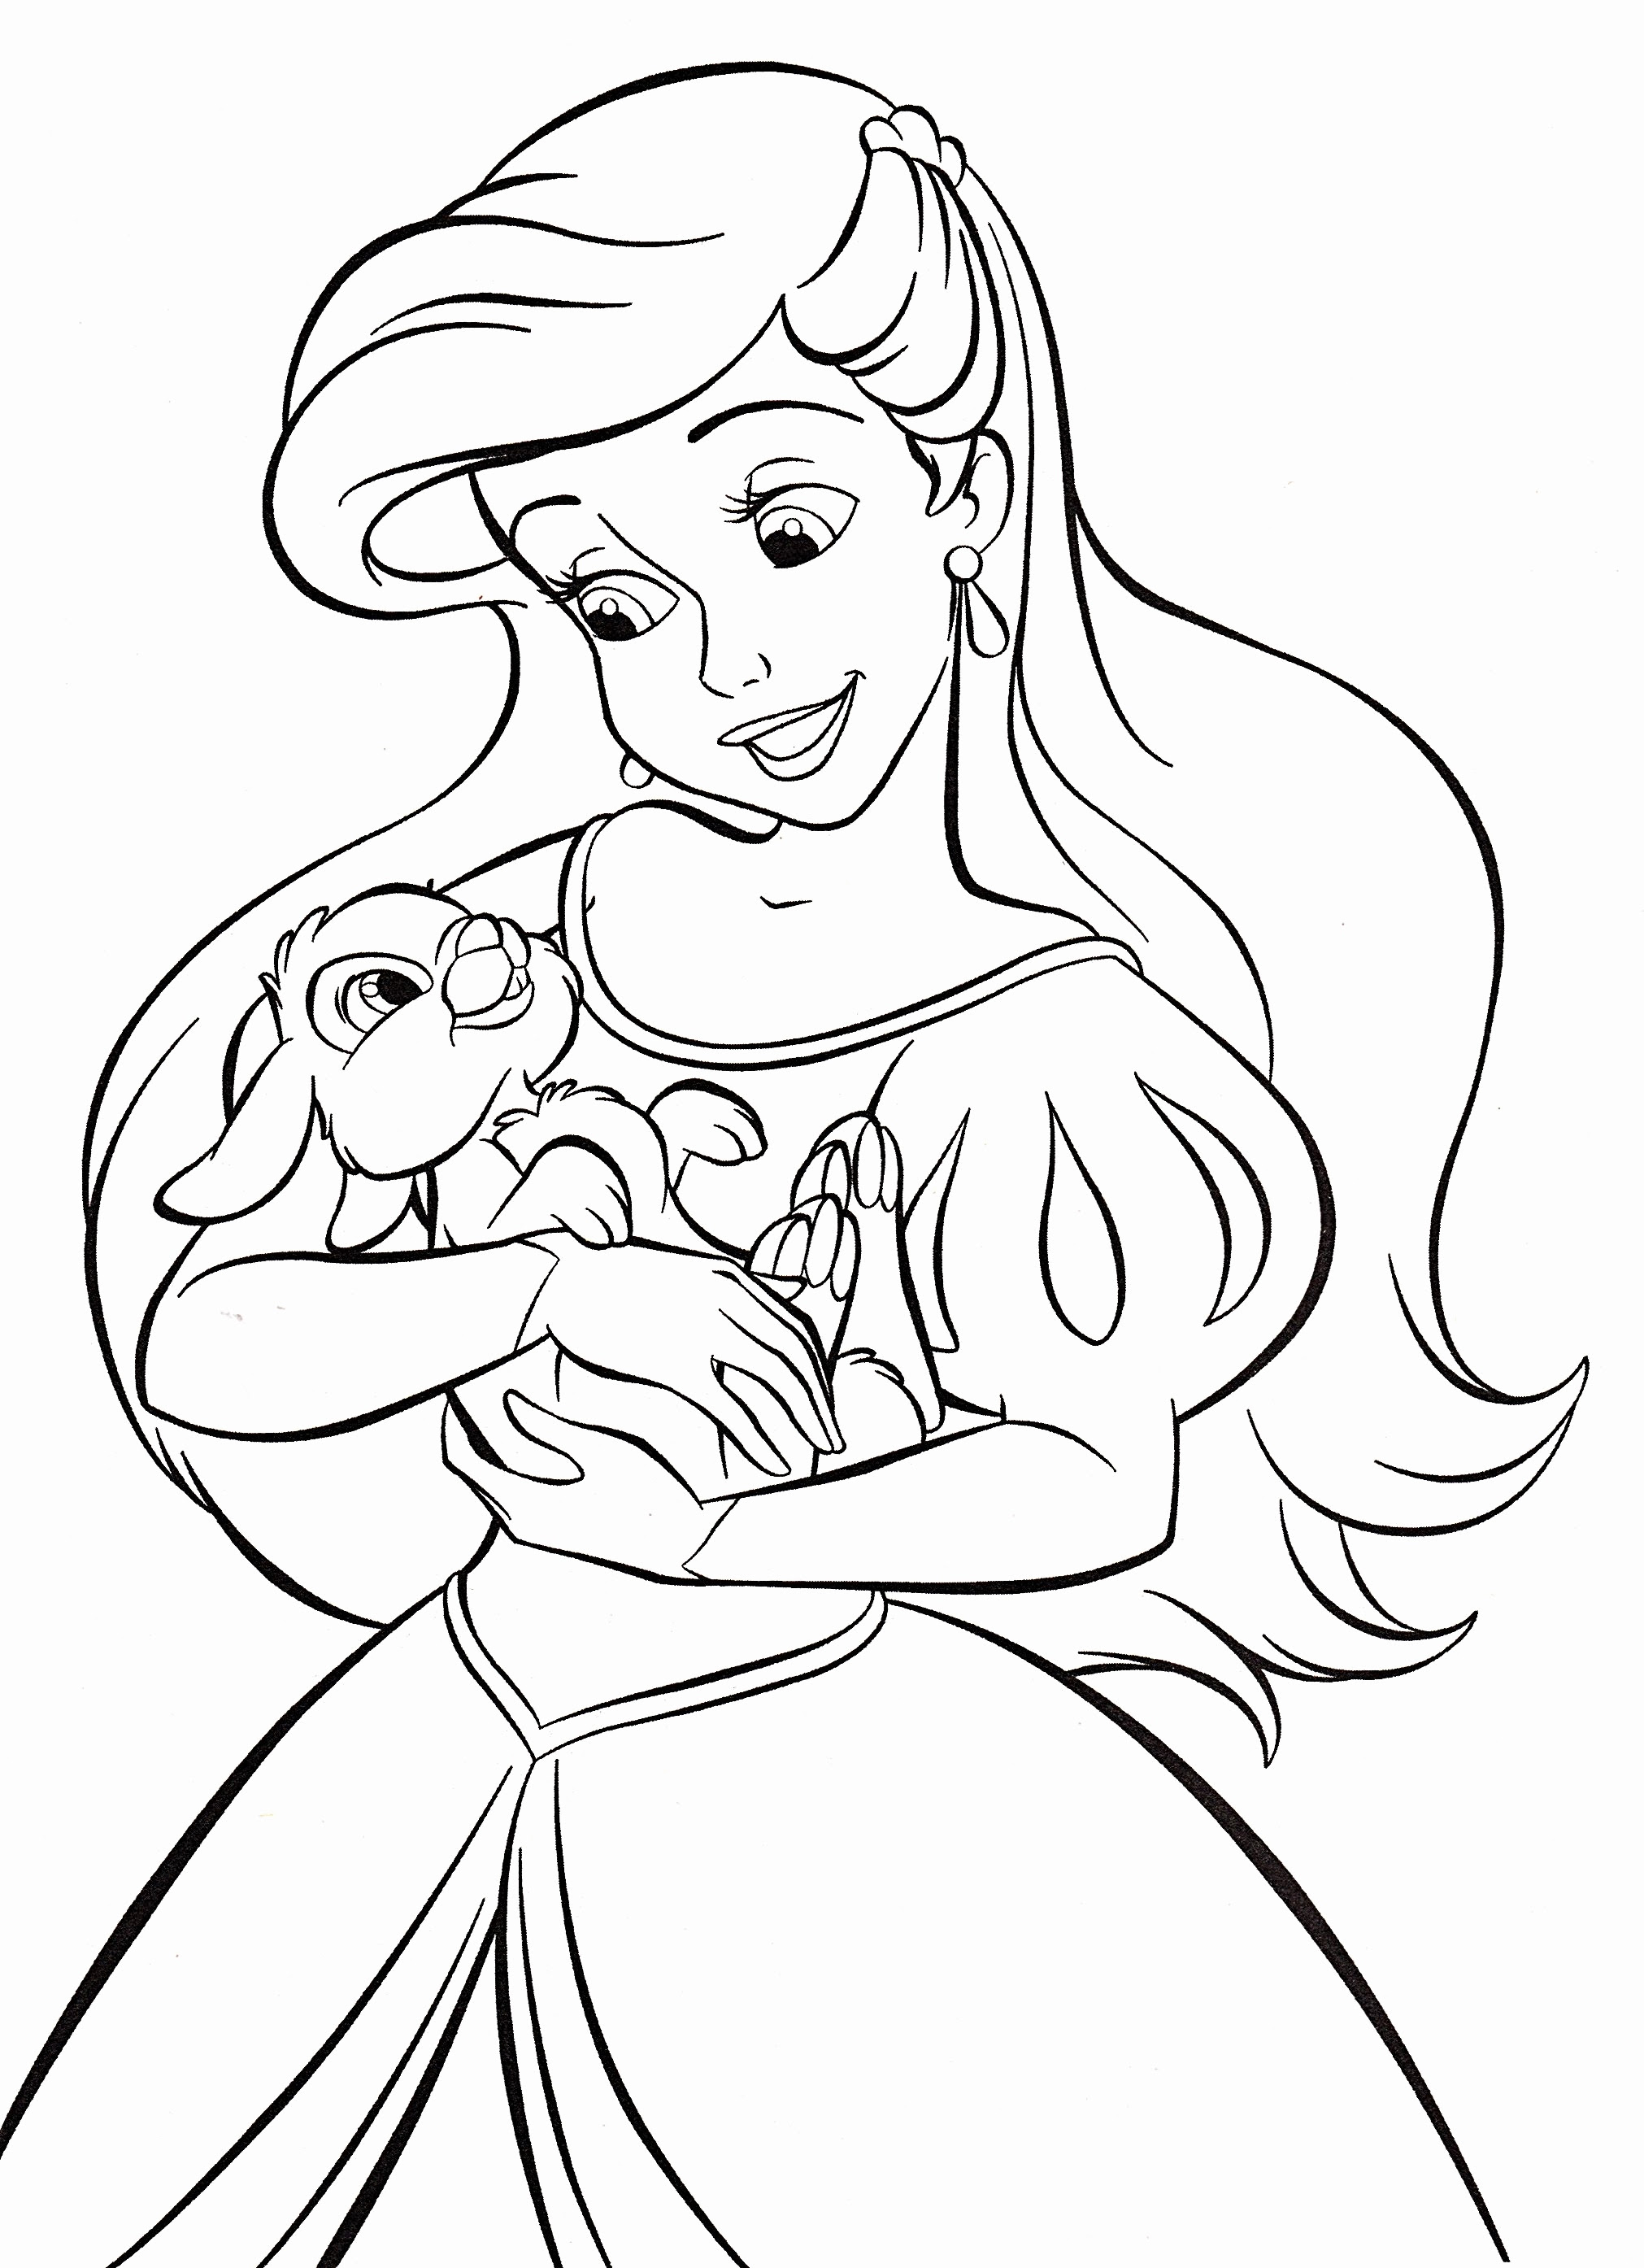 Ariel Christmas Coloring Pages at GetColorings.com   Free ...